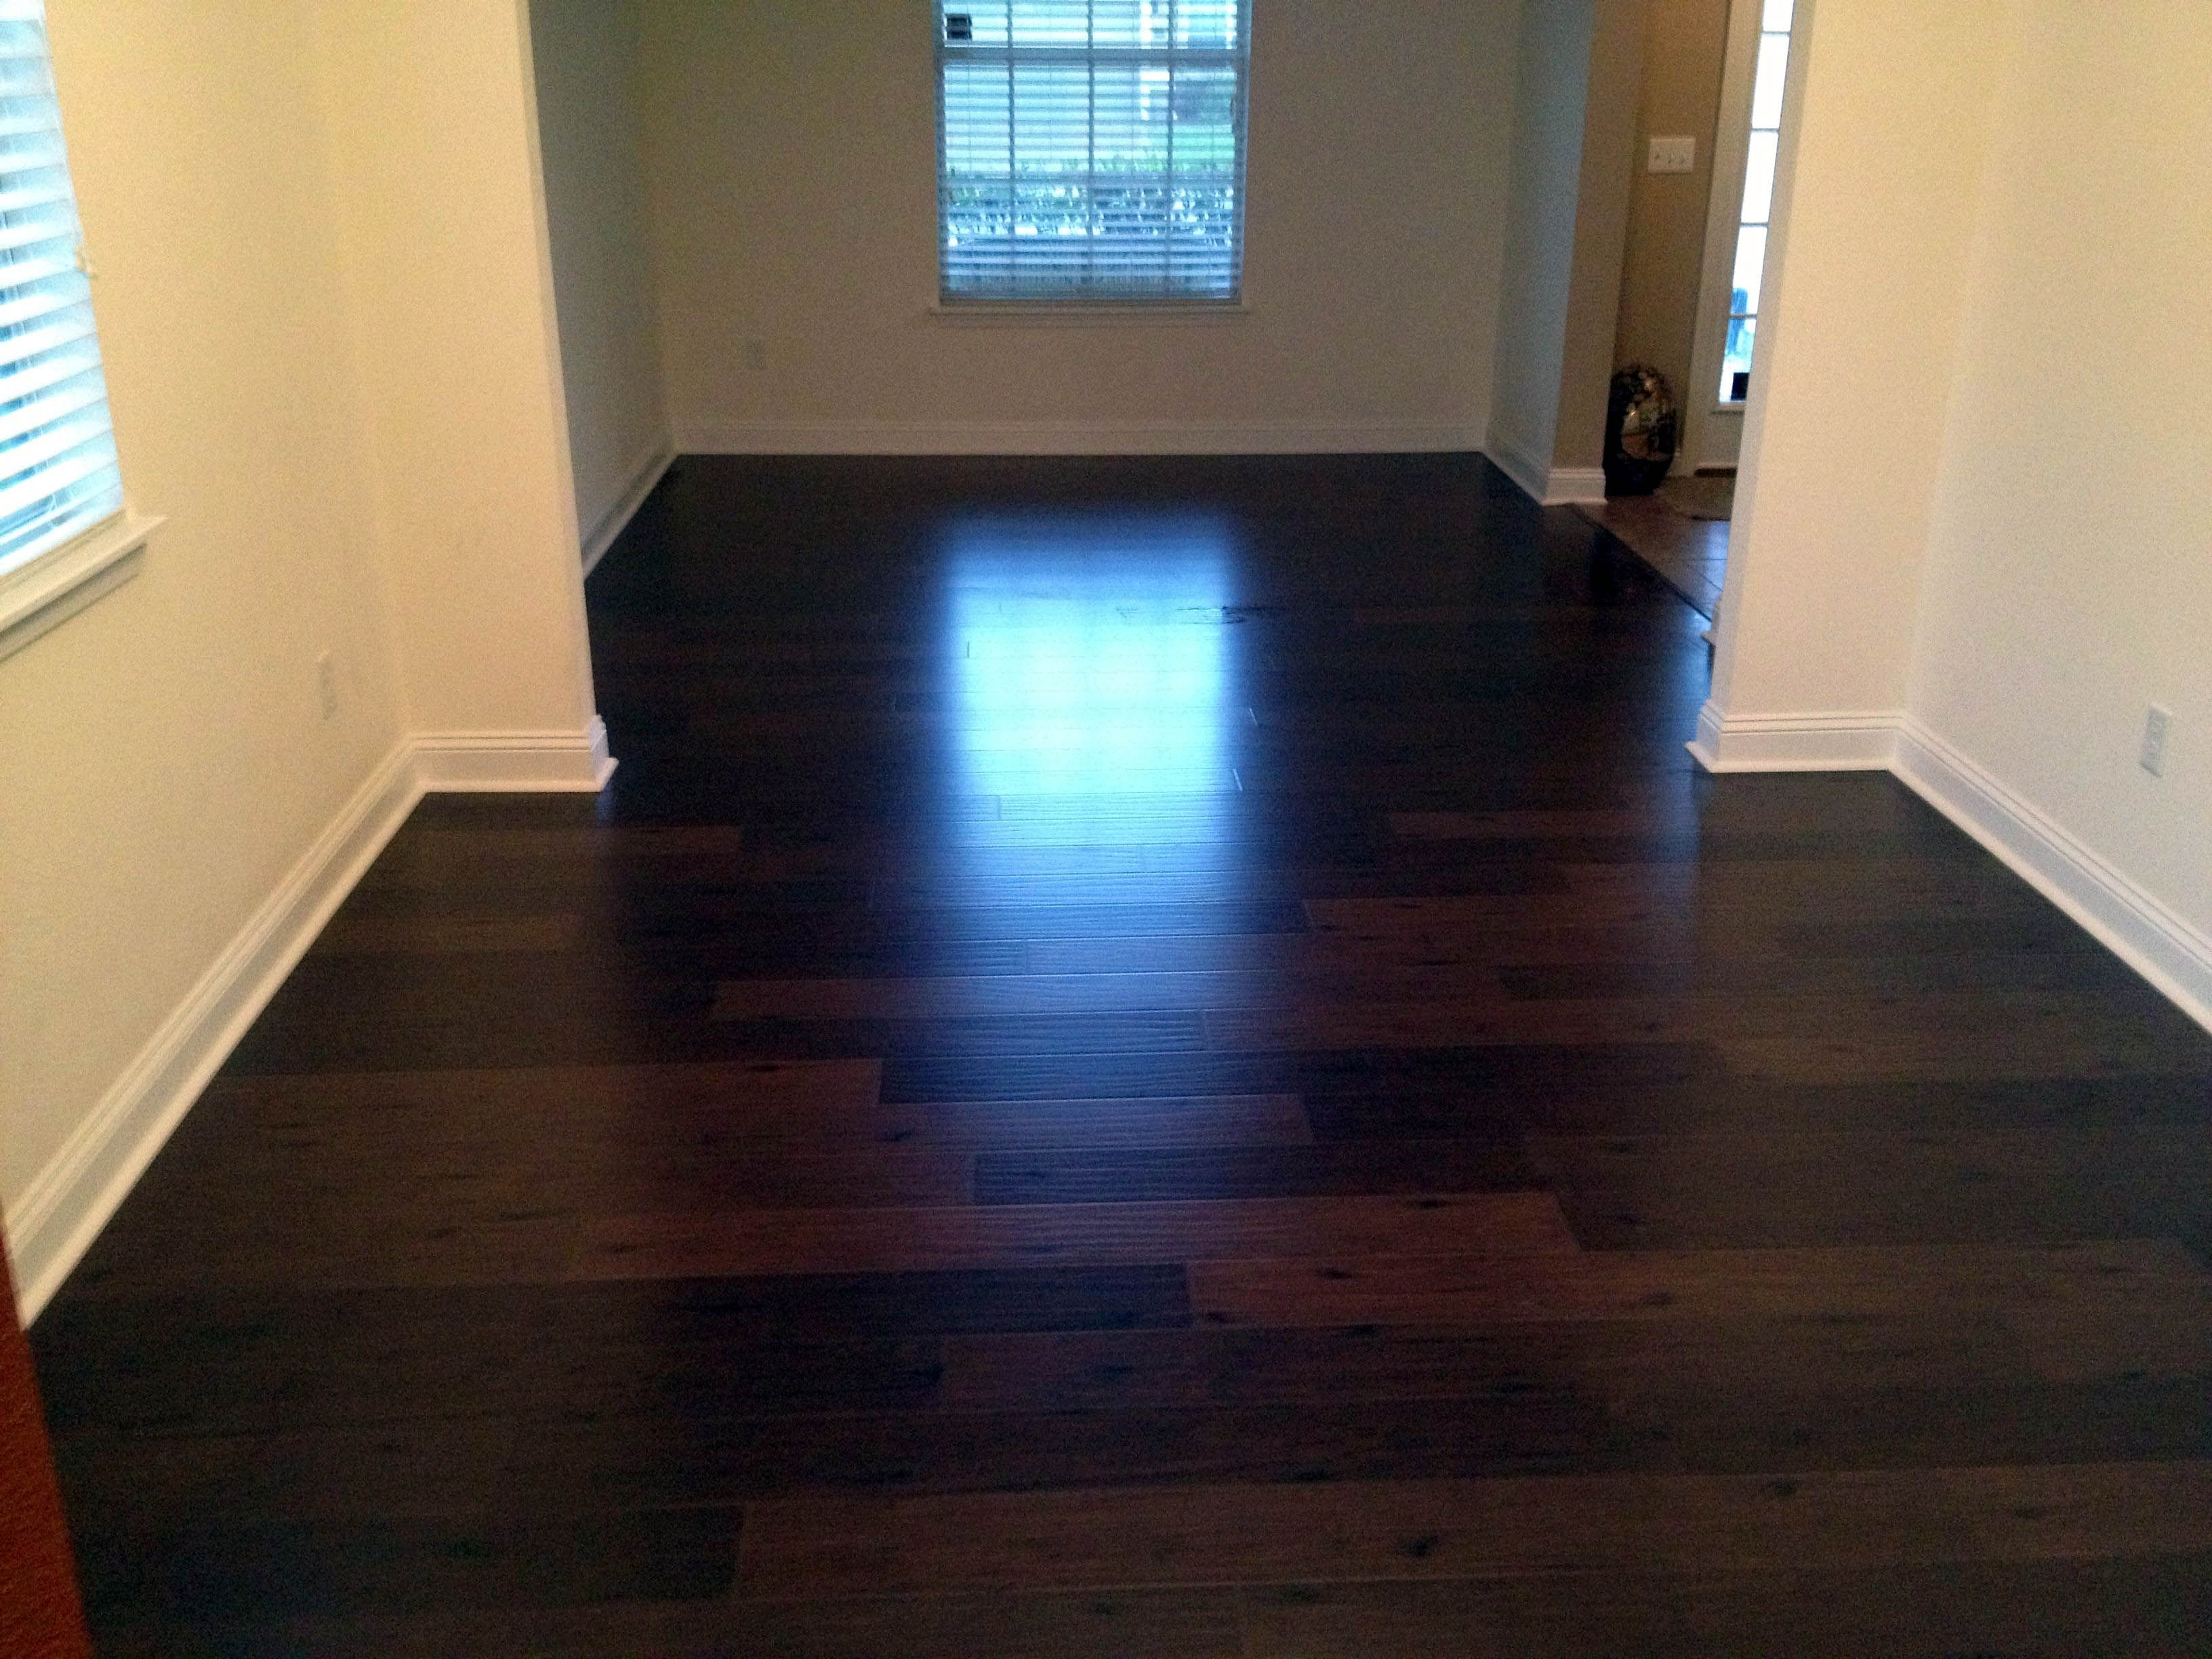 Ideal Laminate Wood Flooring Cost Estimator That Will Impress You Flooring Laminate Wood Flooring Cost Laminate Wood Flooring Colors